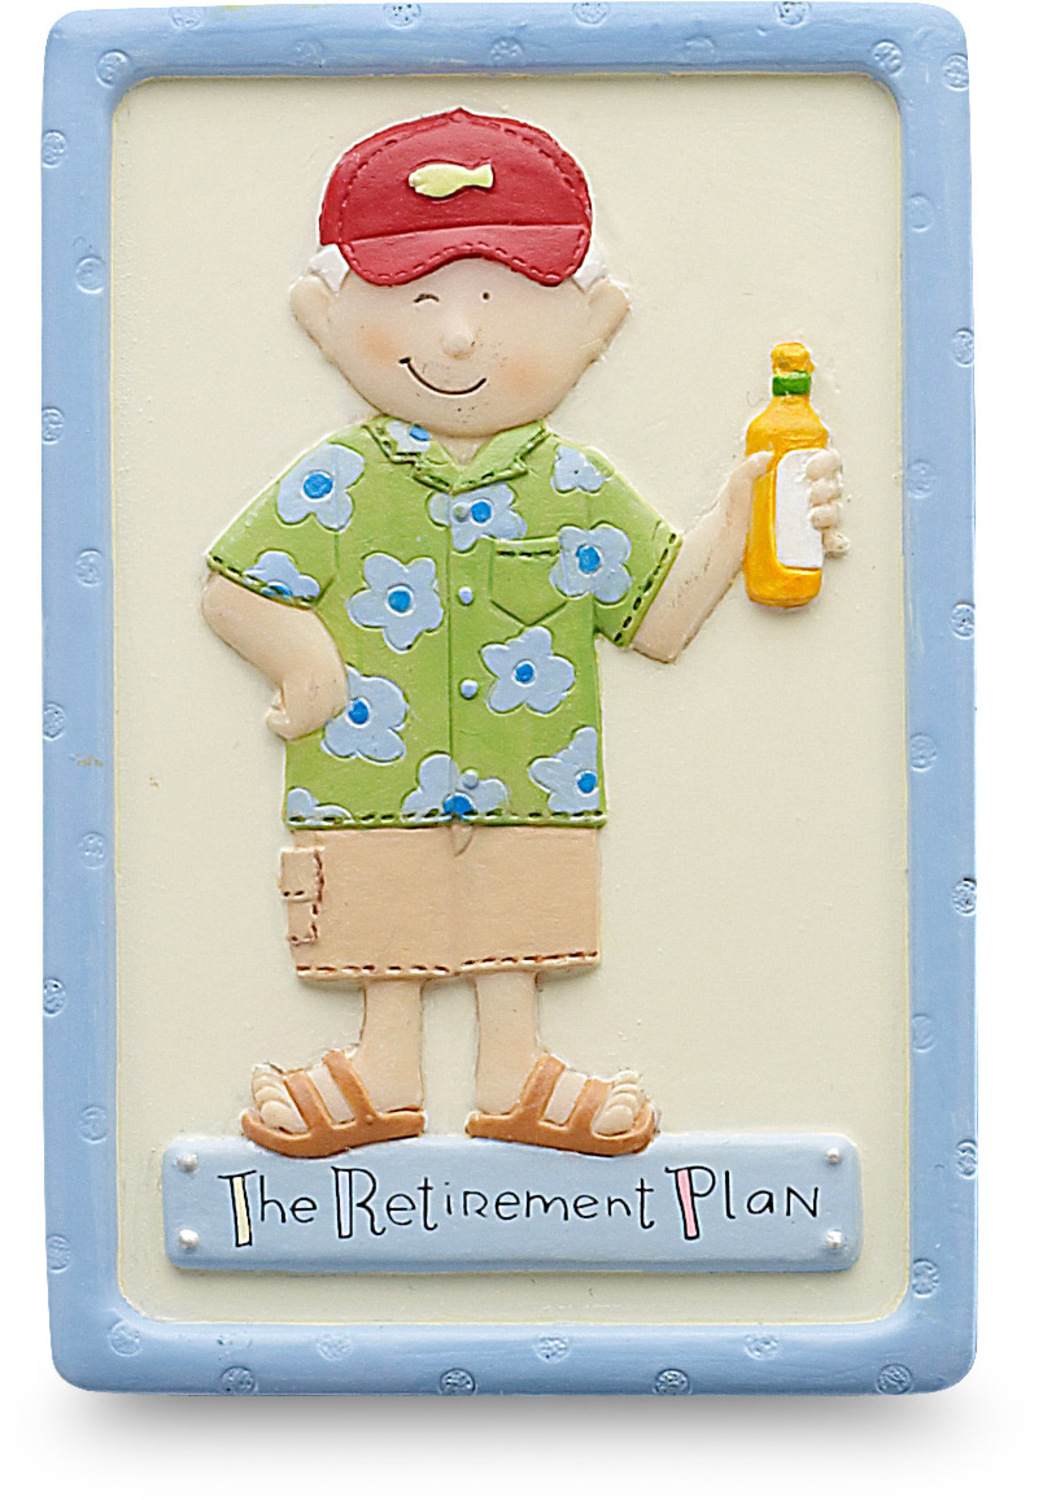 "The Retirement Plan (male) by Well Seasoned - The Retirement Plan (male) - 3"" Magnet"